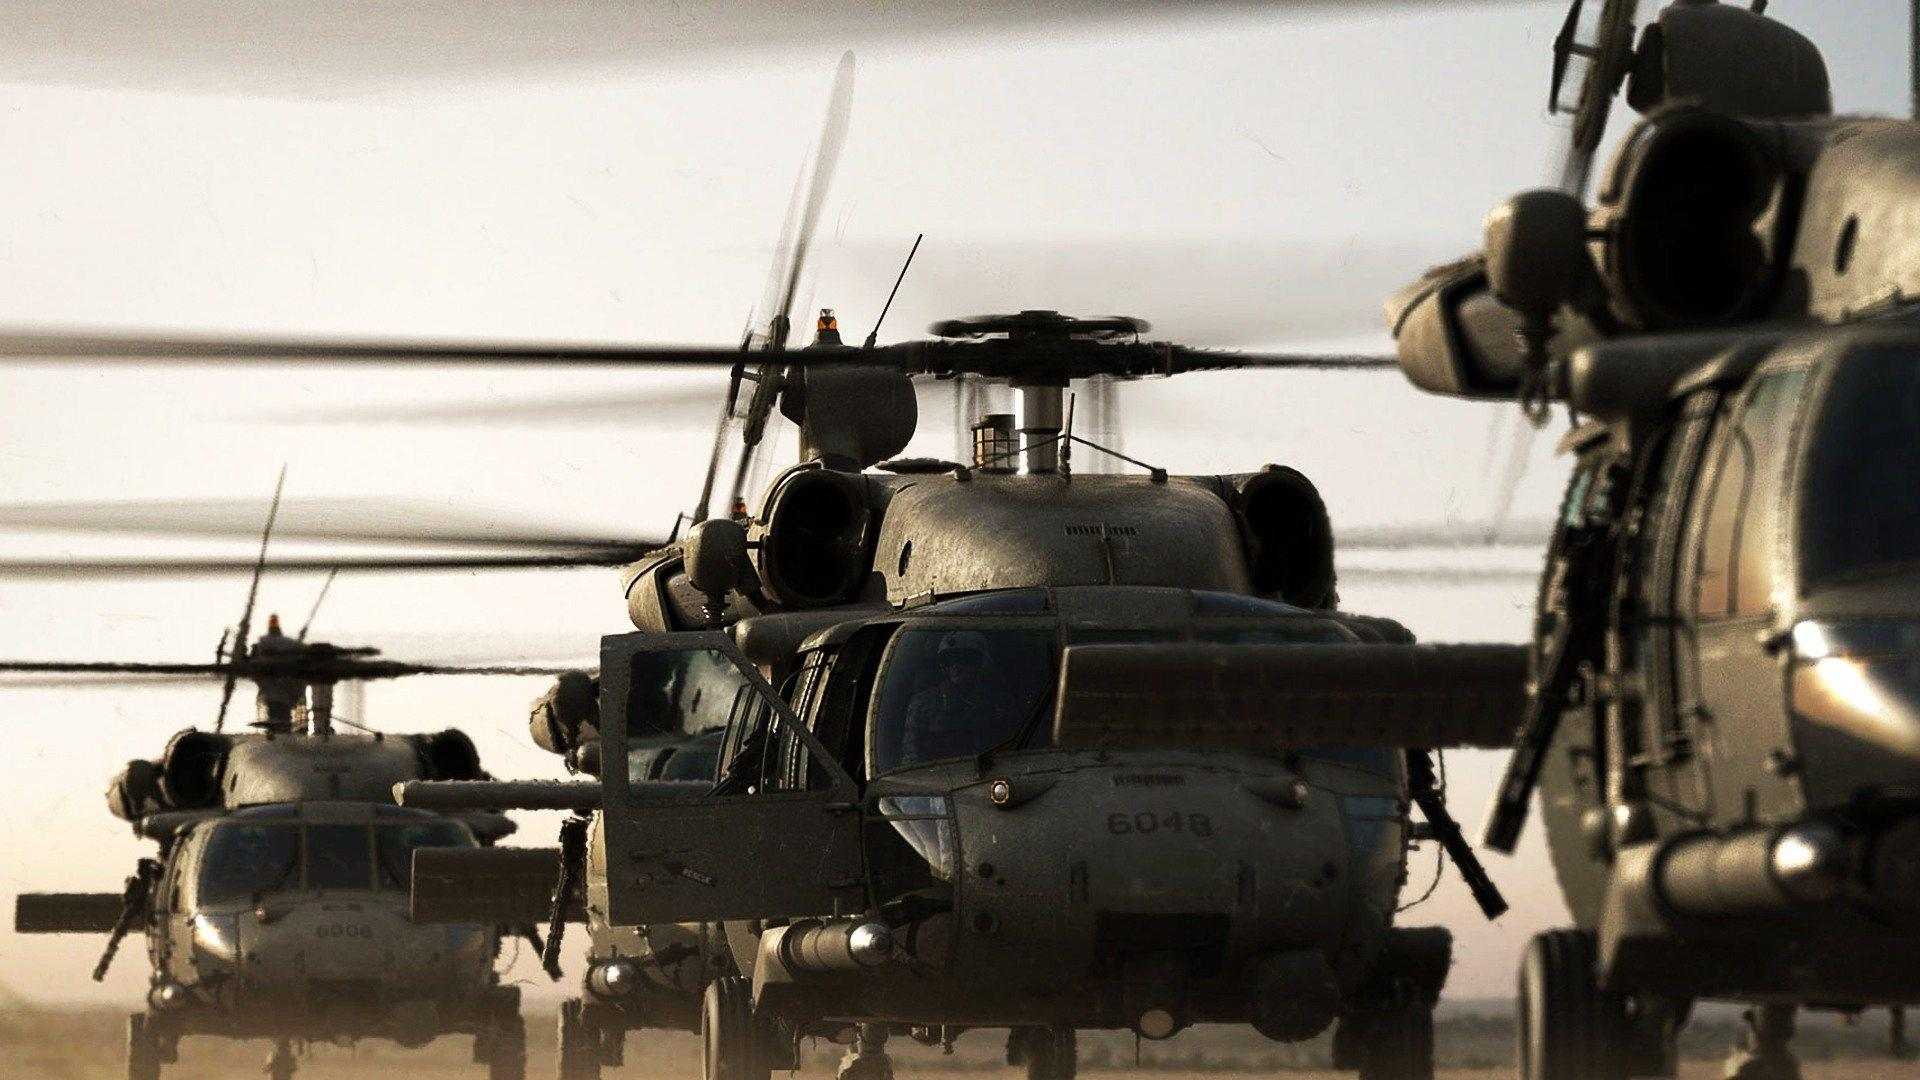 Sikorsky HH-60 Pave Hawk wallpapers HD quality